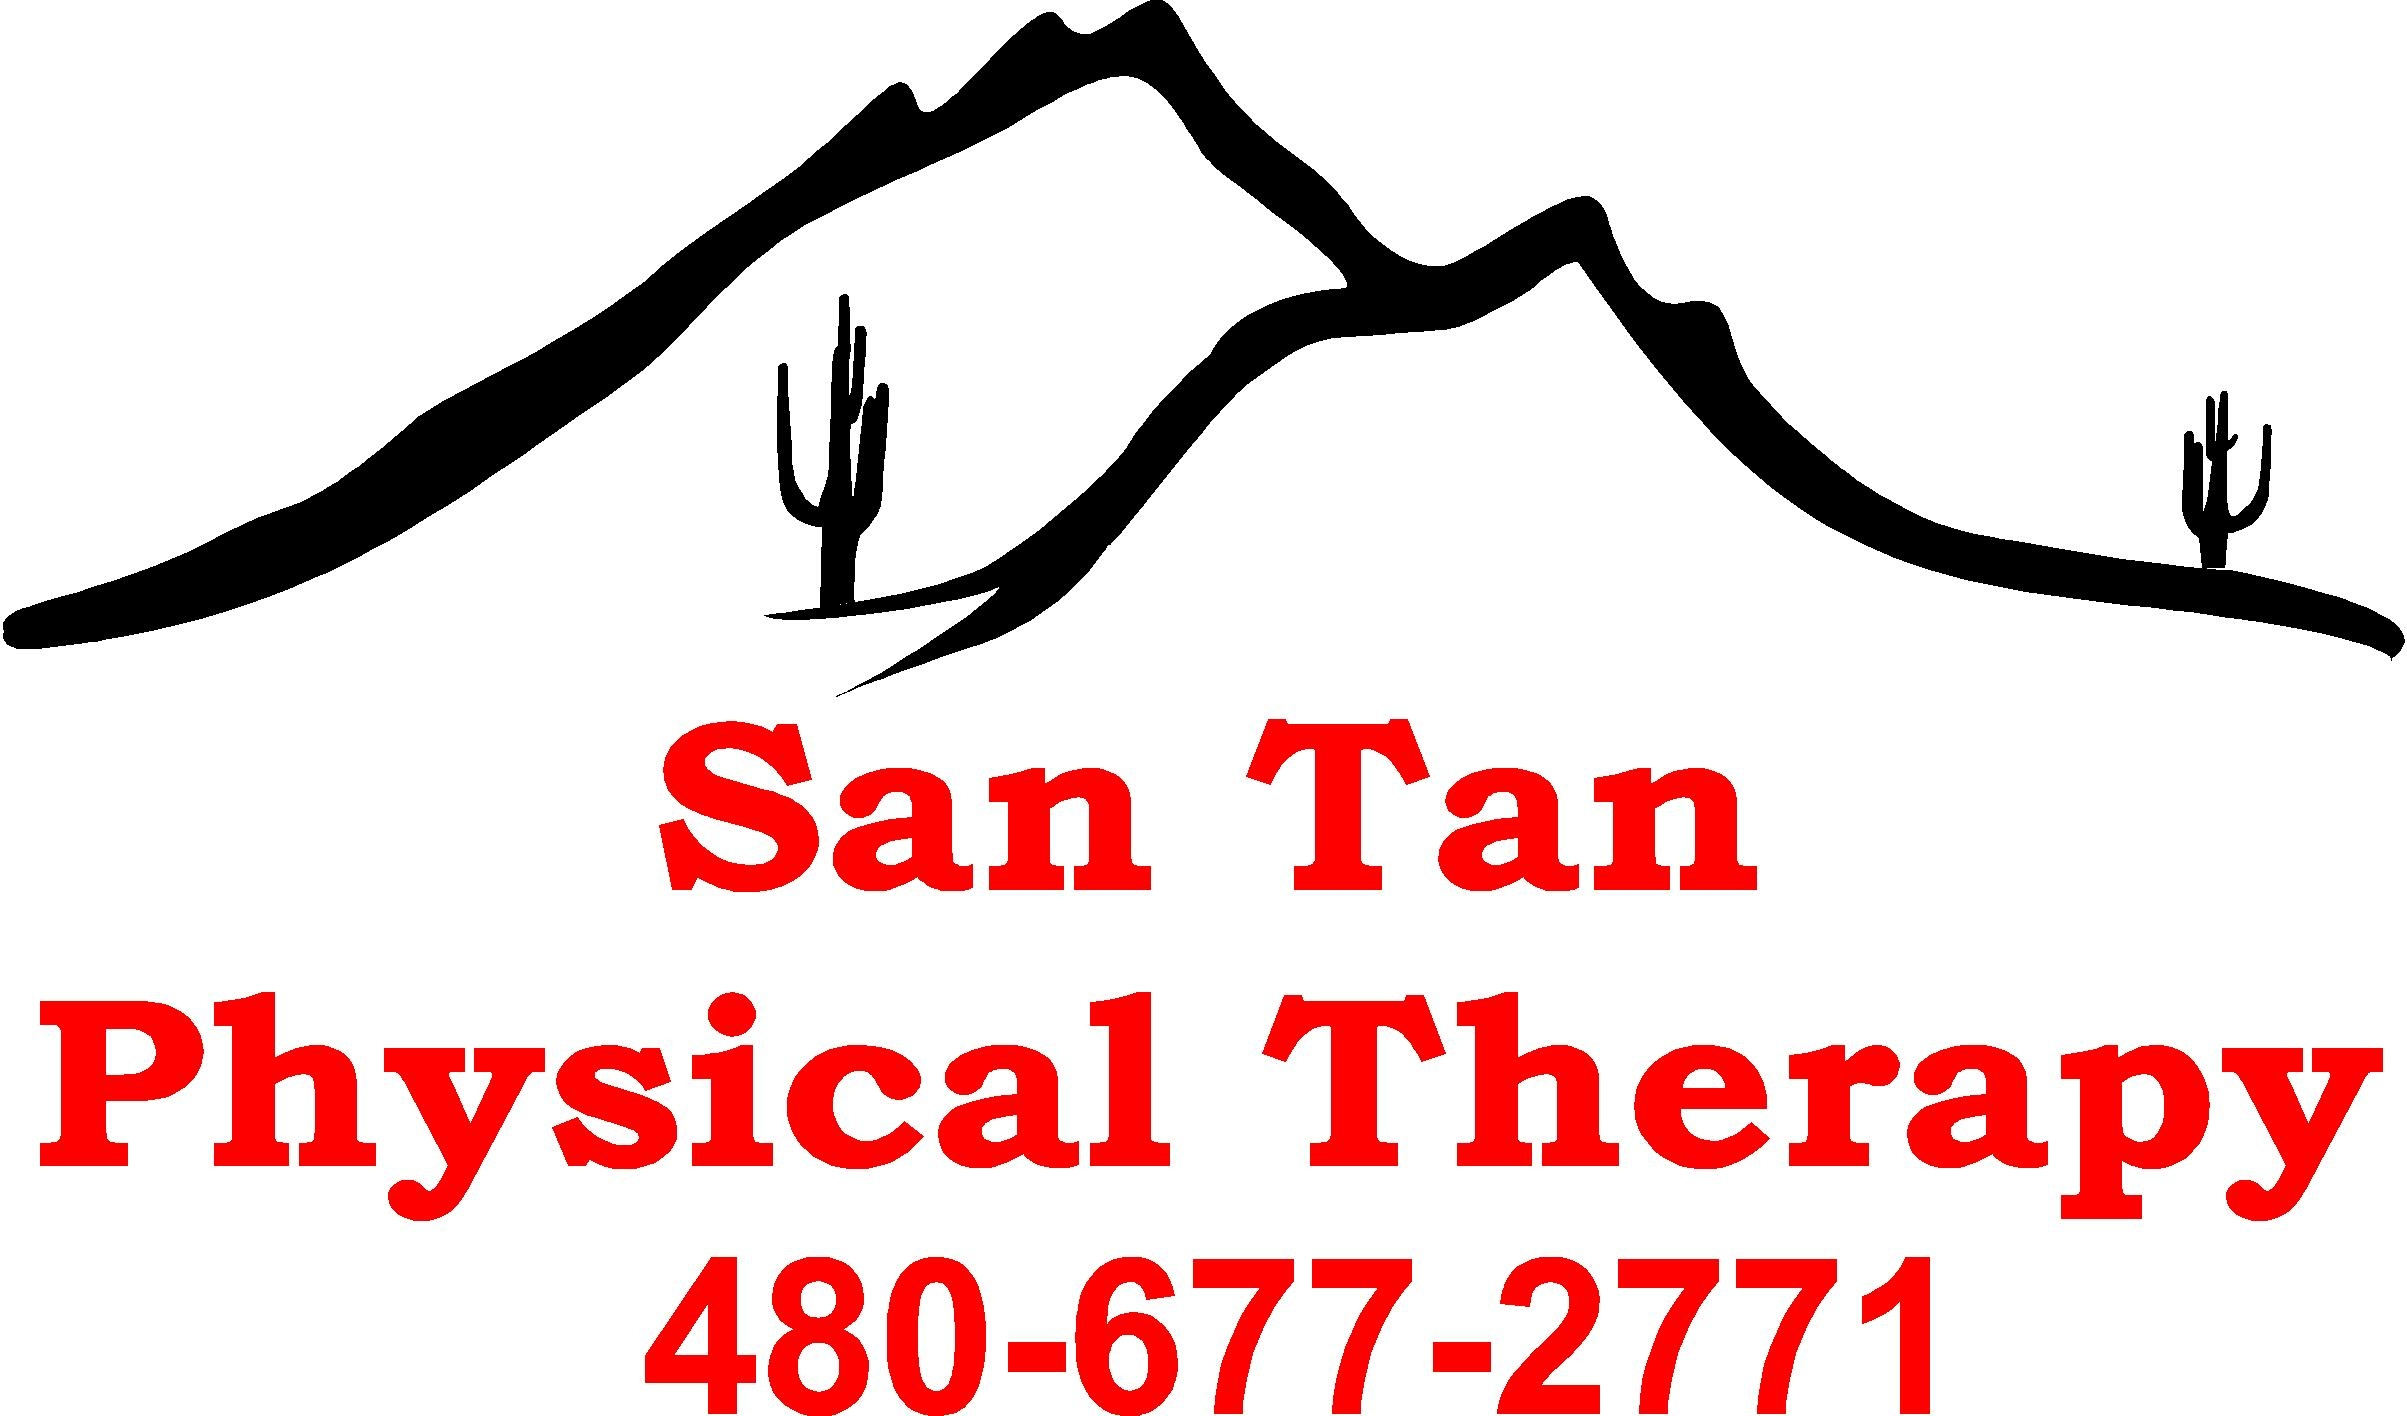 San Tan Physical Therapy